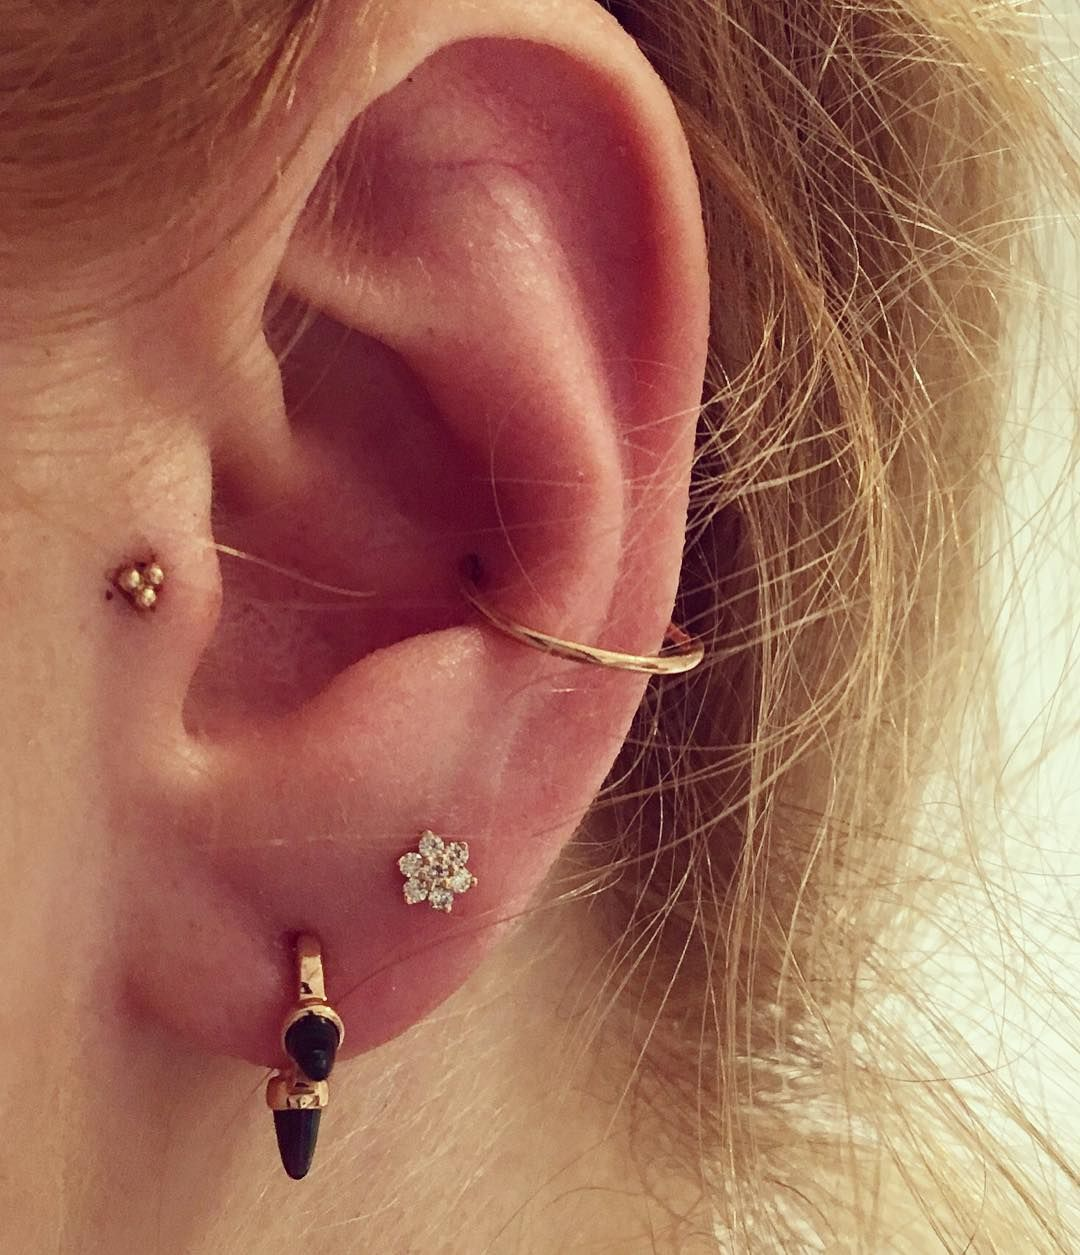 I Did This Today Got My Tragus And Conch Pierced At Maria Tash